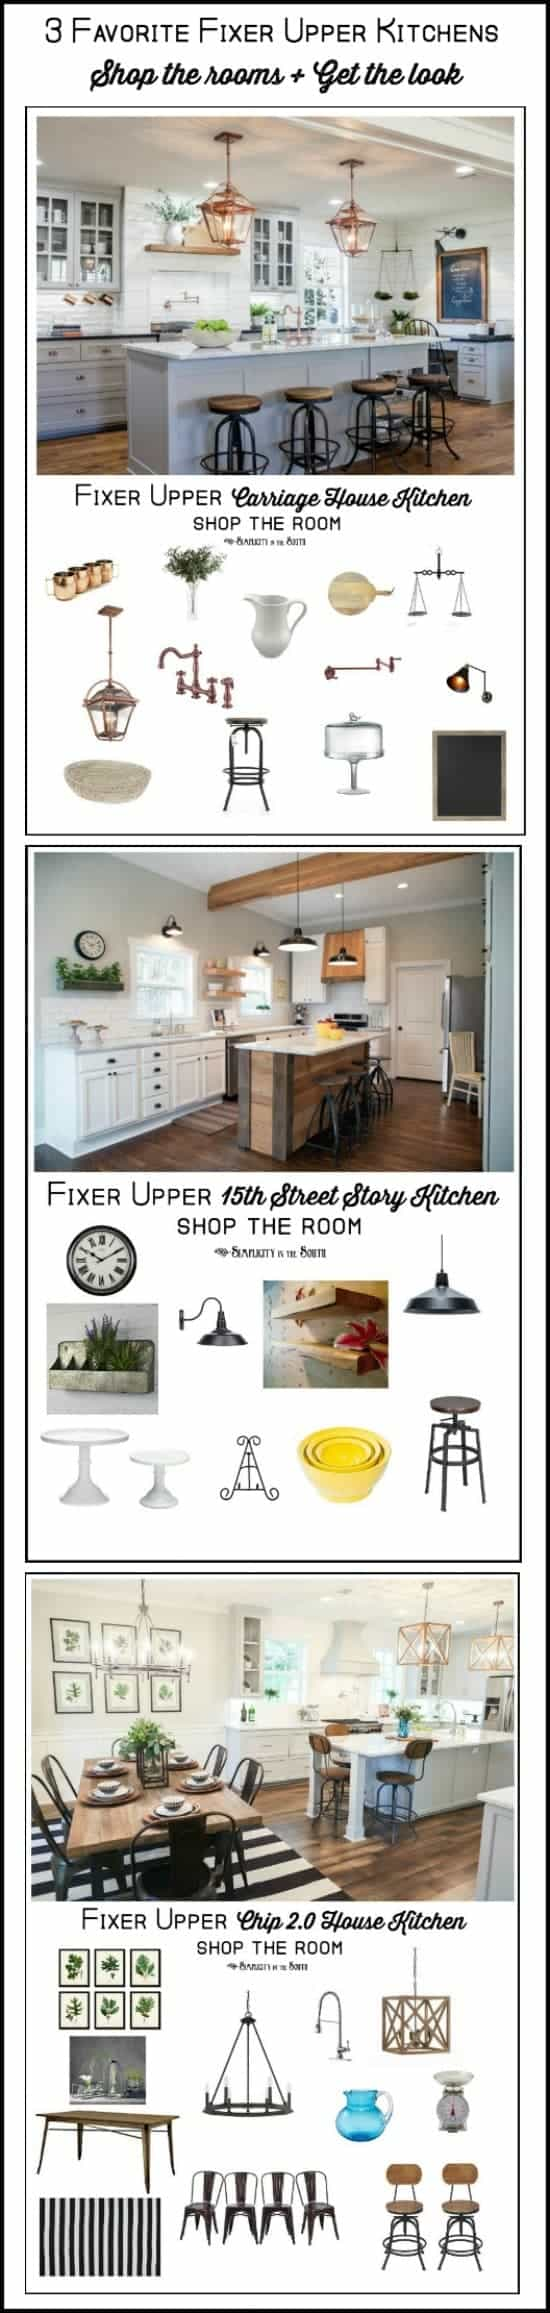 3 favorite Fixer Upper Kitchens Shop the rooms and get the look